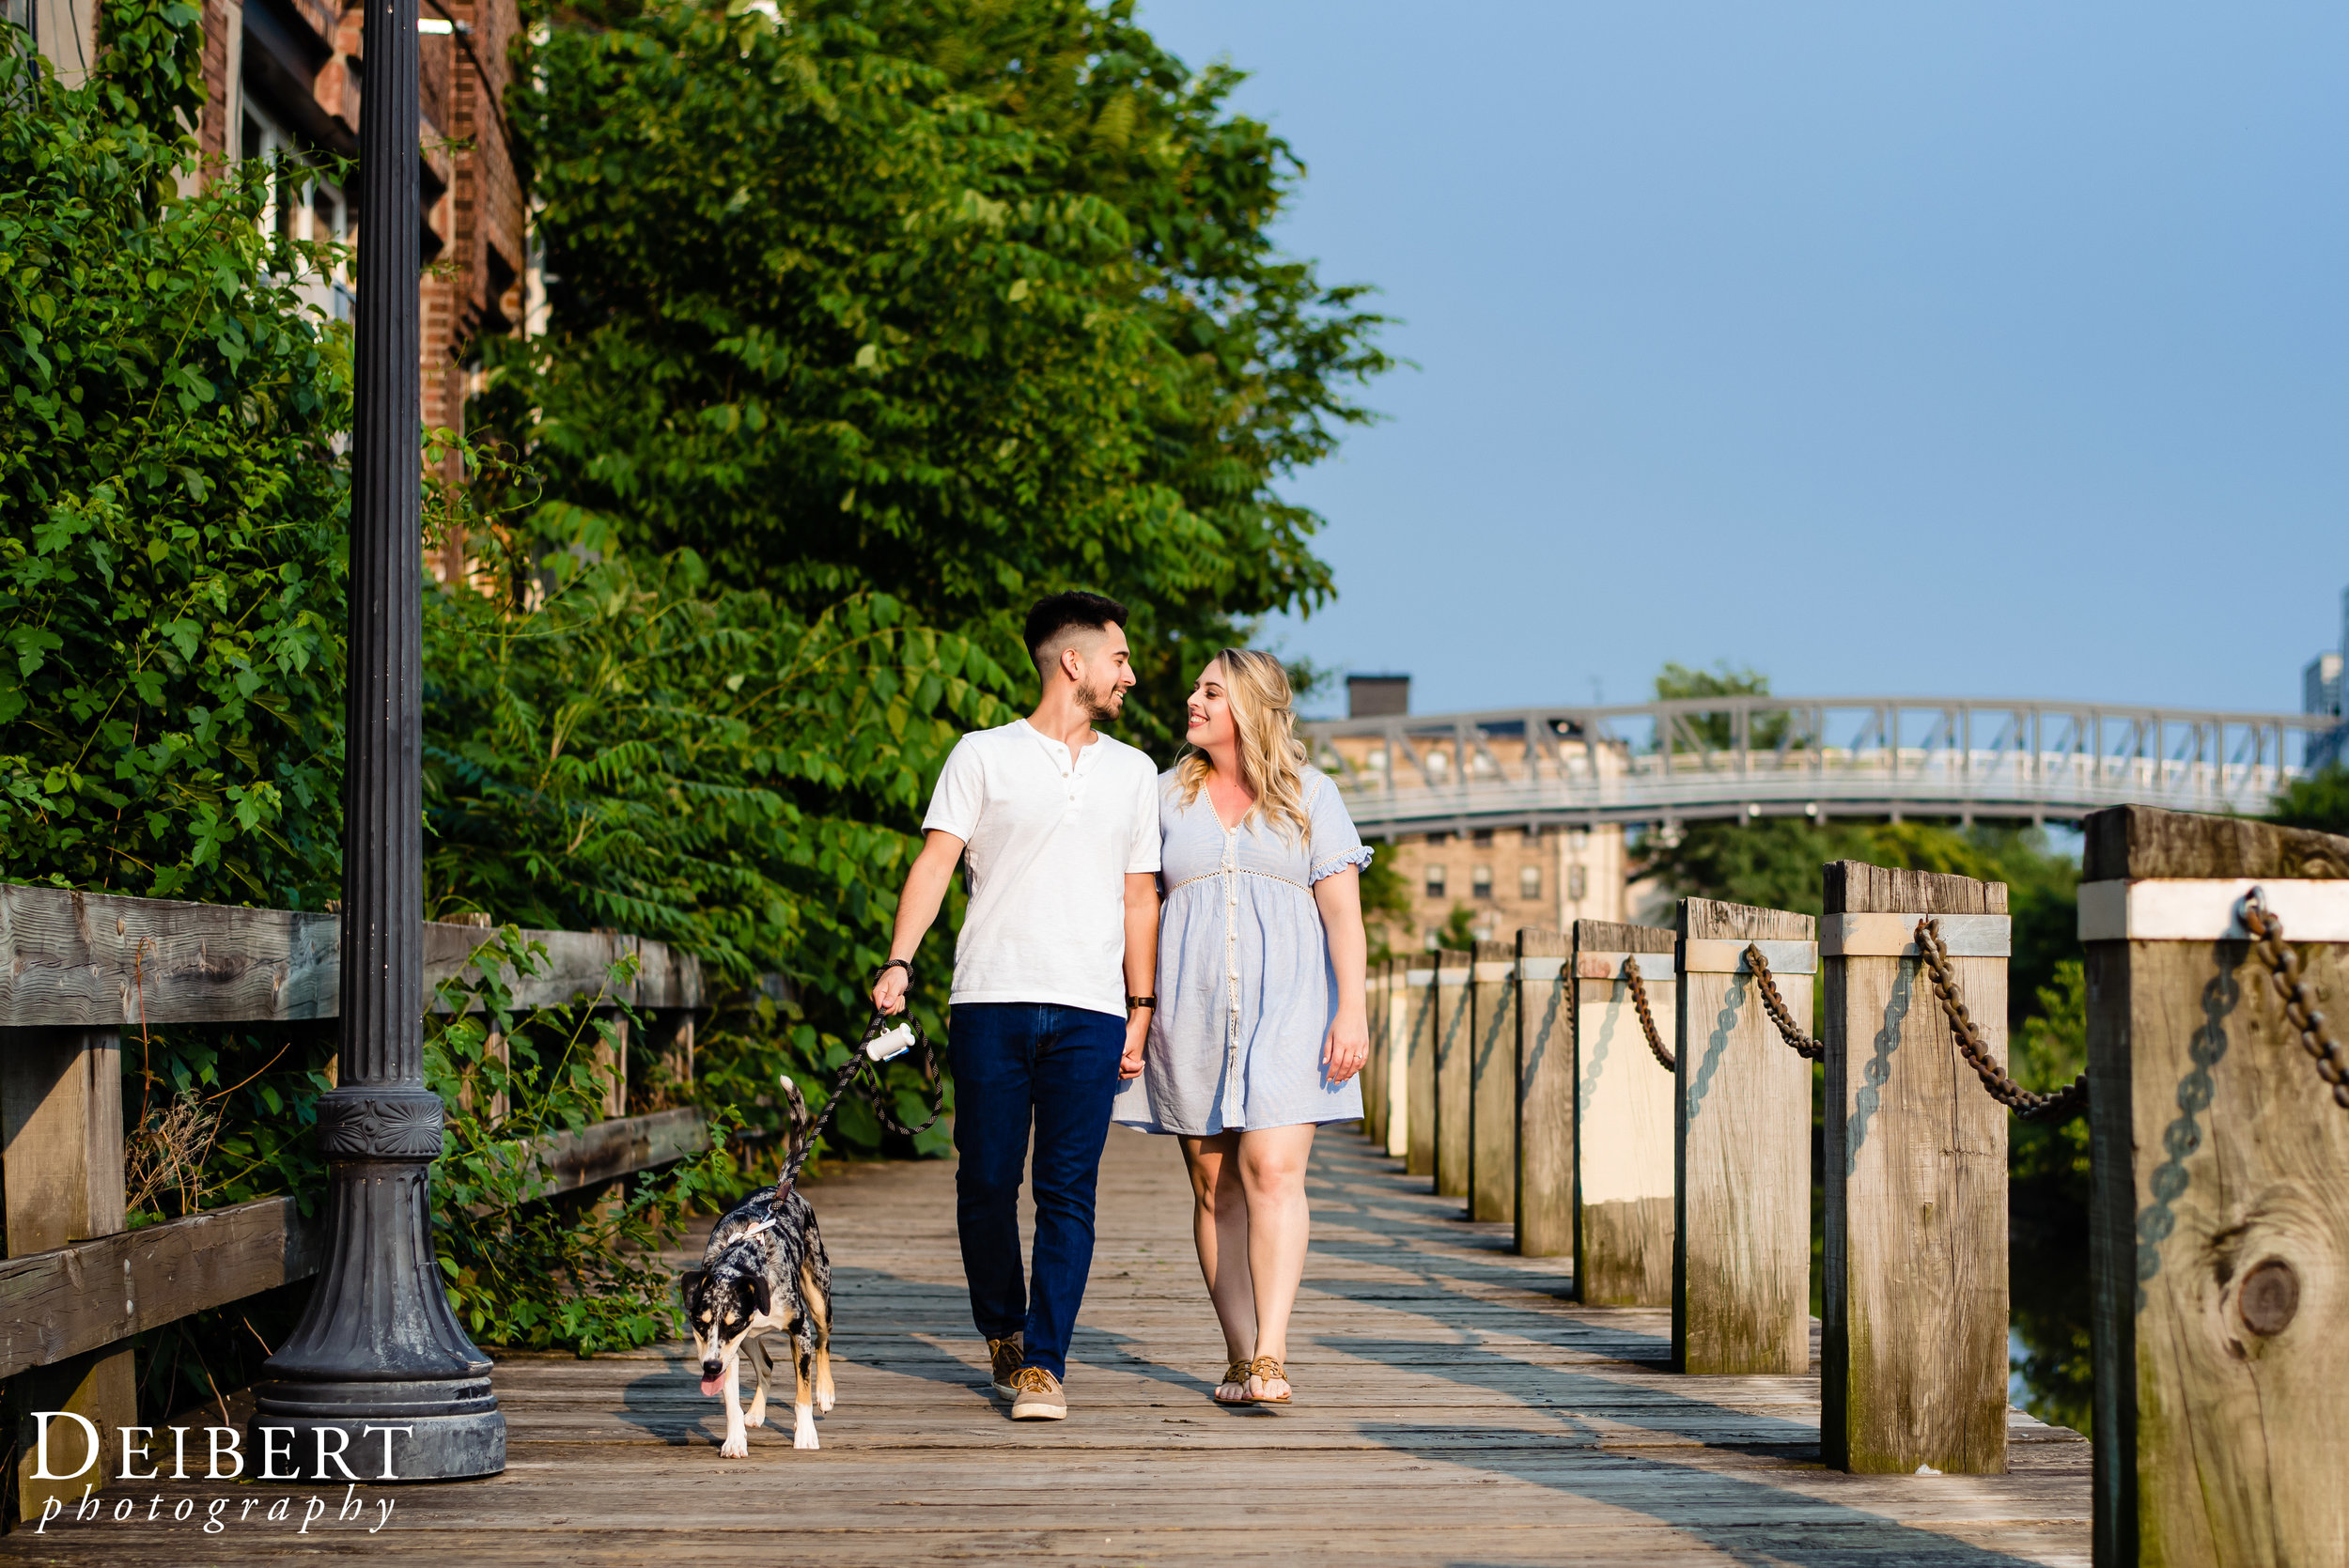 Manayunk_Tow_Path_Engagement-3.jpg